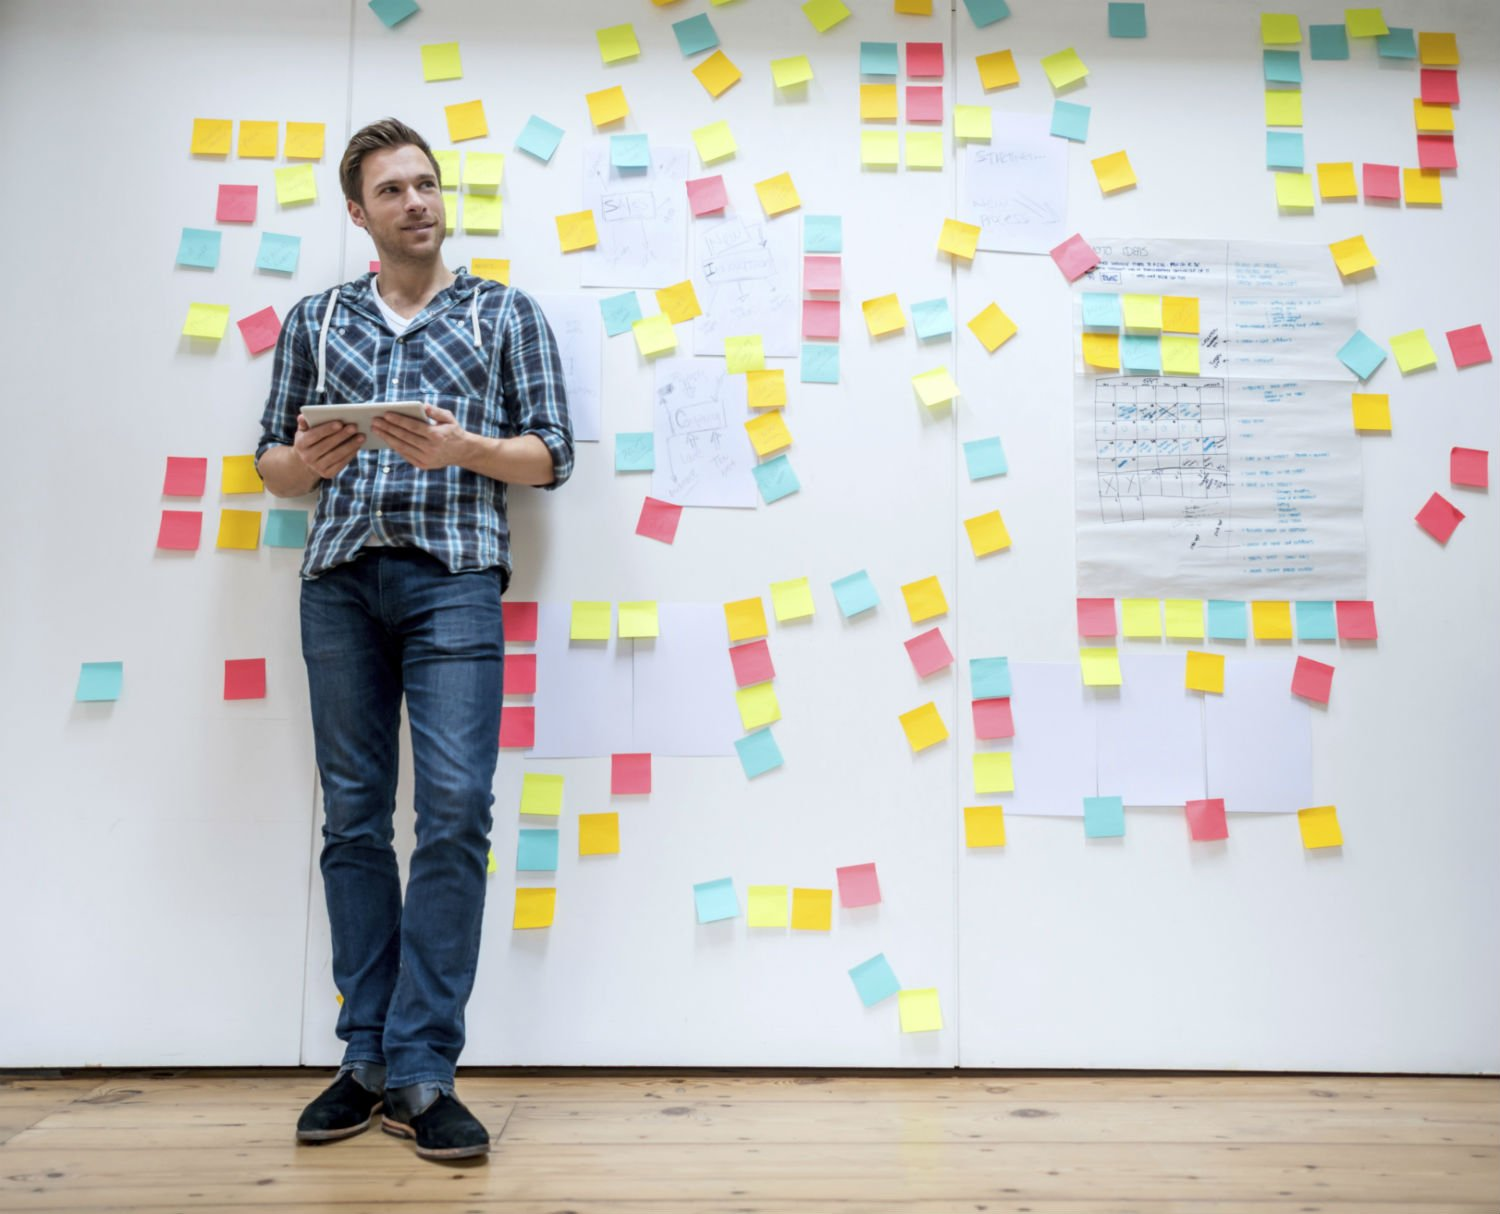 Entrepreneur leaning on a wall covered in post-it notes